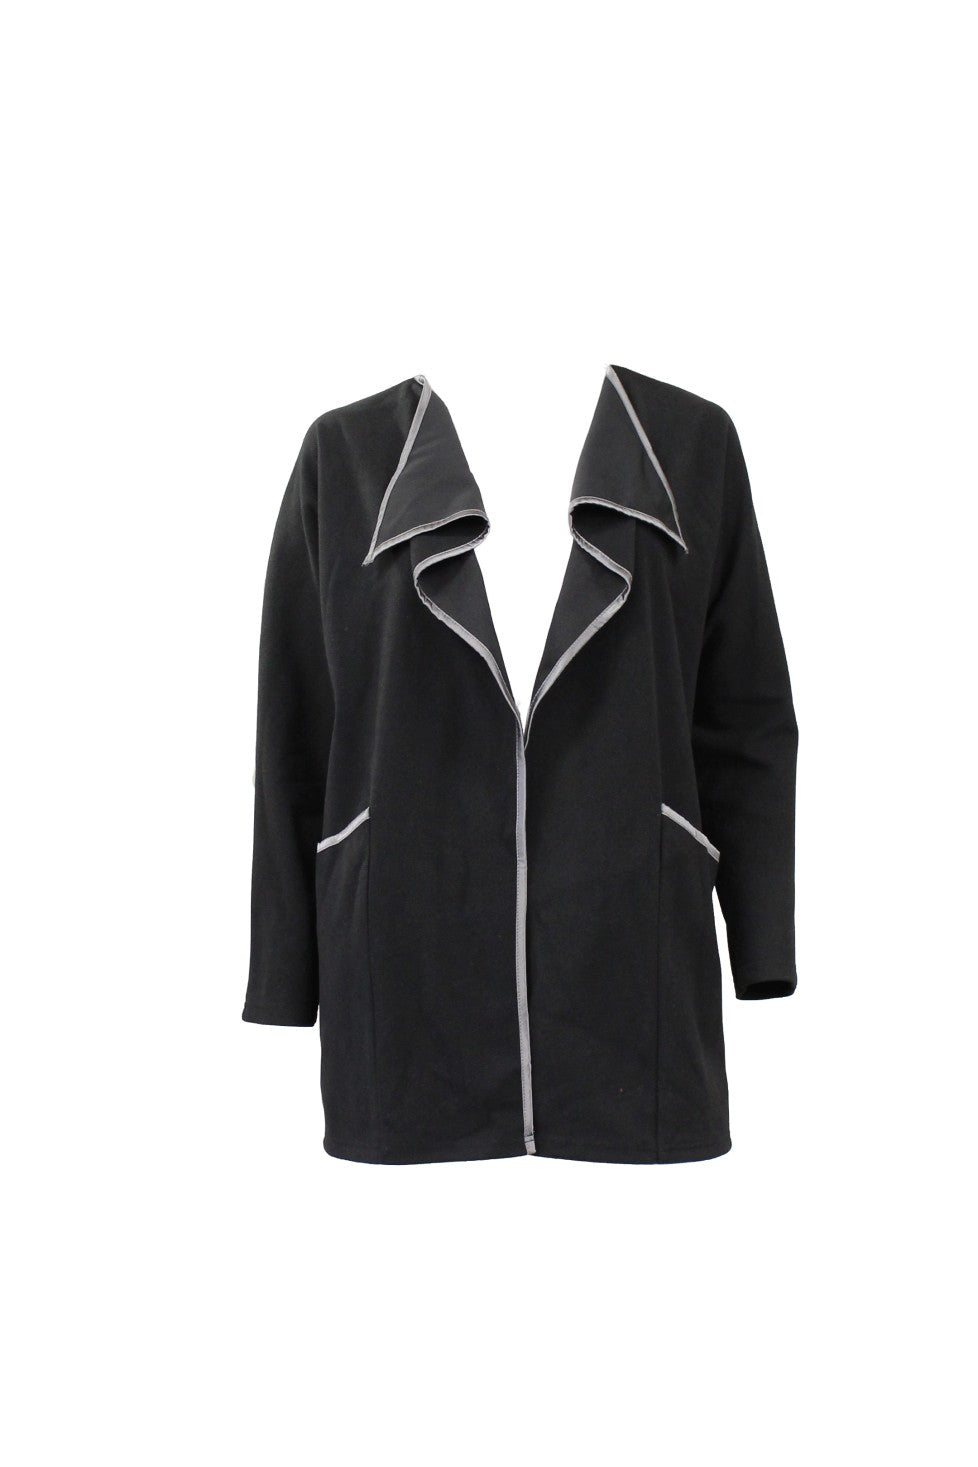 Black Willow Free Jacket Coat Style and Grace